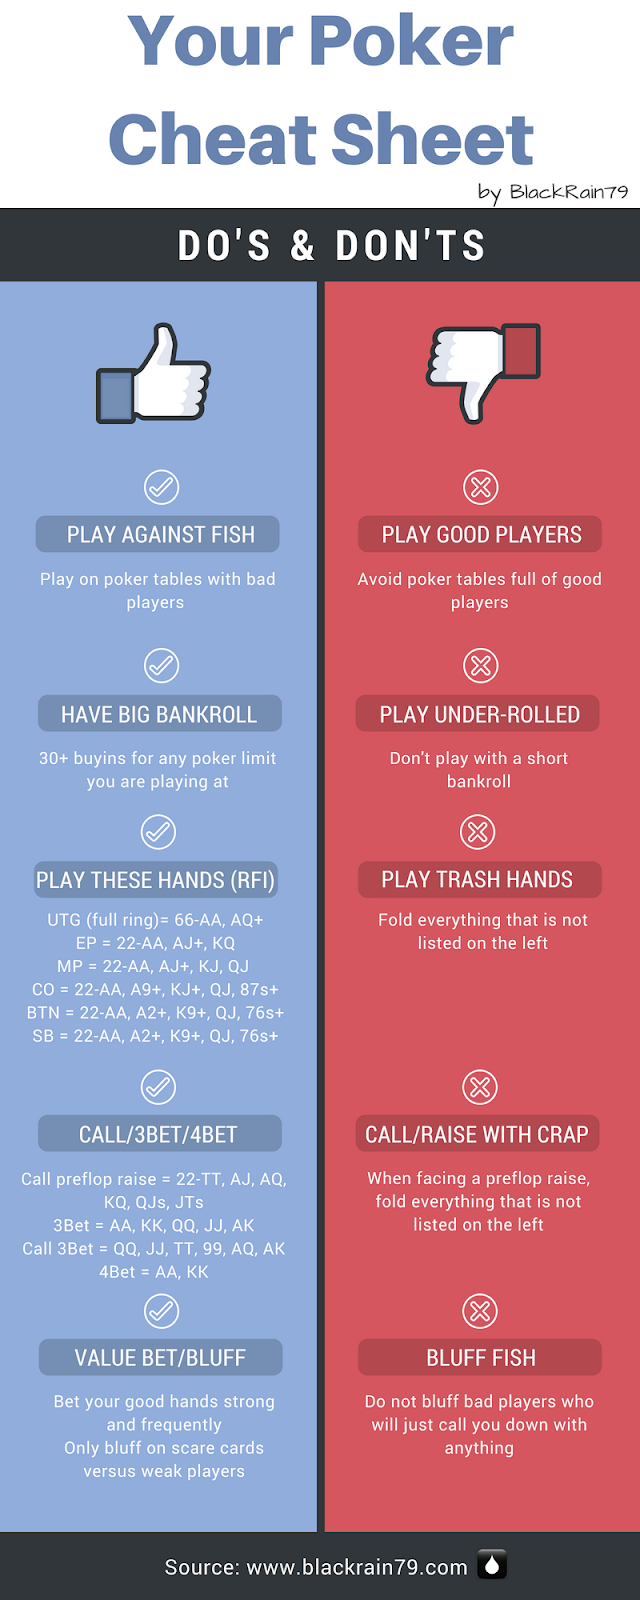 Poker cheat sheet 2019